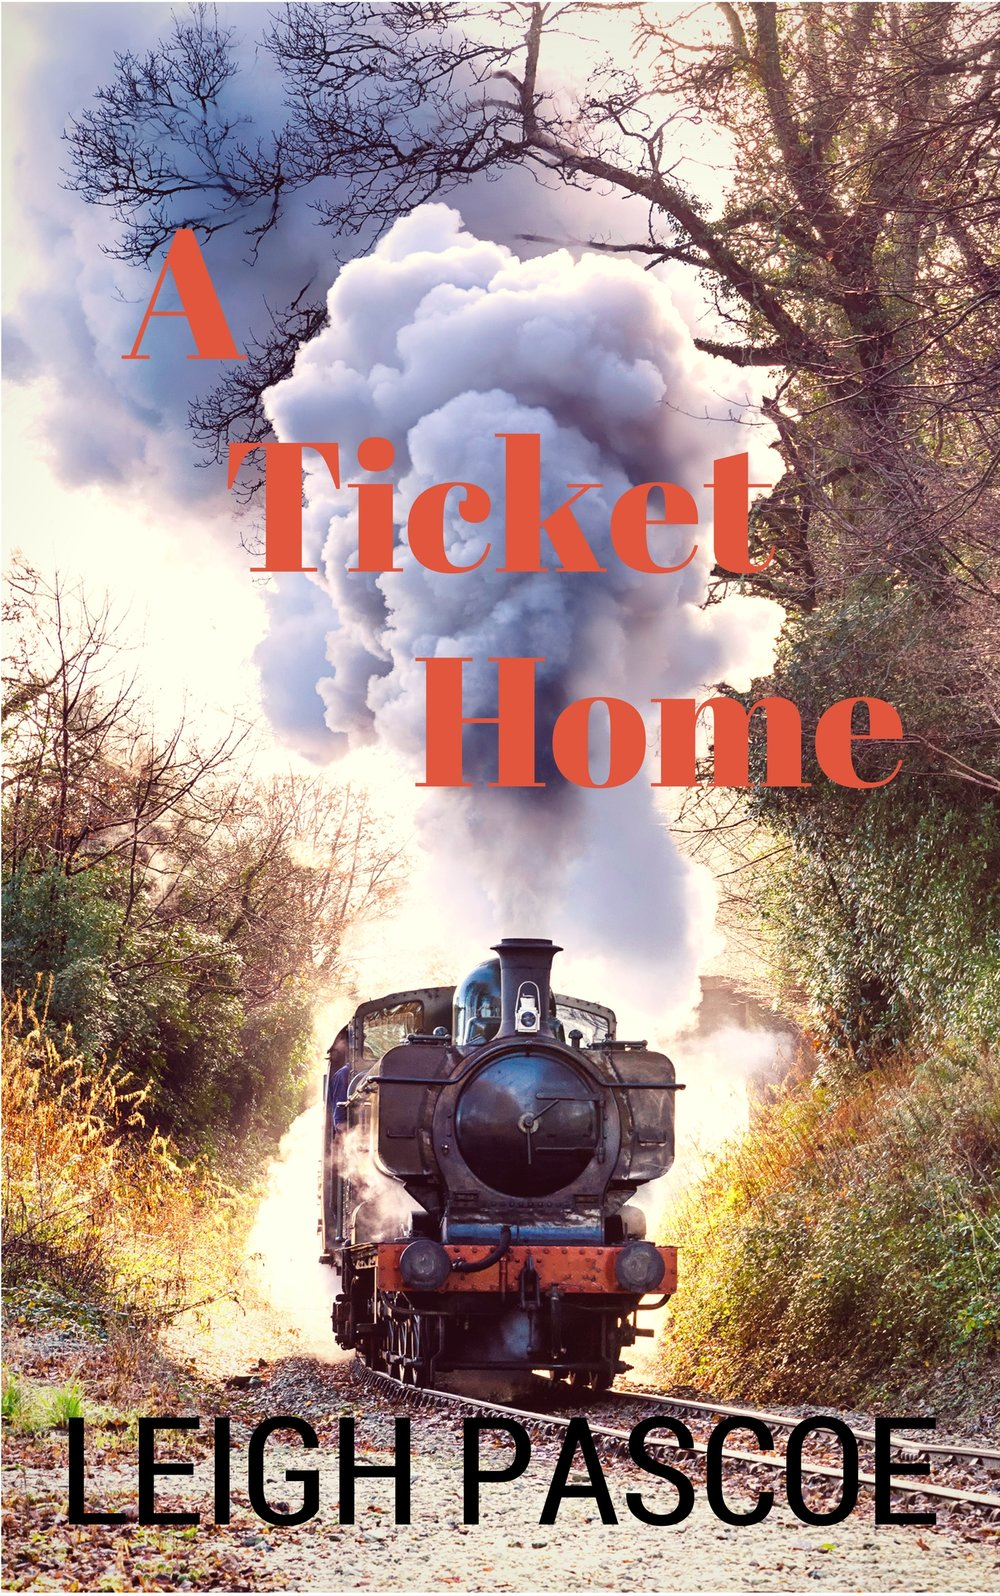 A   Ticket Home - Leigh Pascoe    Emily returns home to the tiny bush community with her young daughter, but fitting in again is proving difficult.  The road ahead will be rough for both mother and daughter.